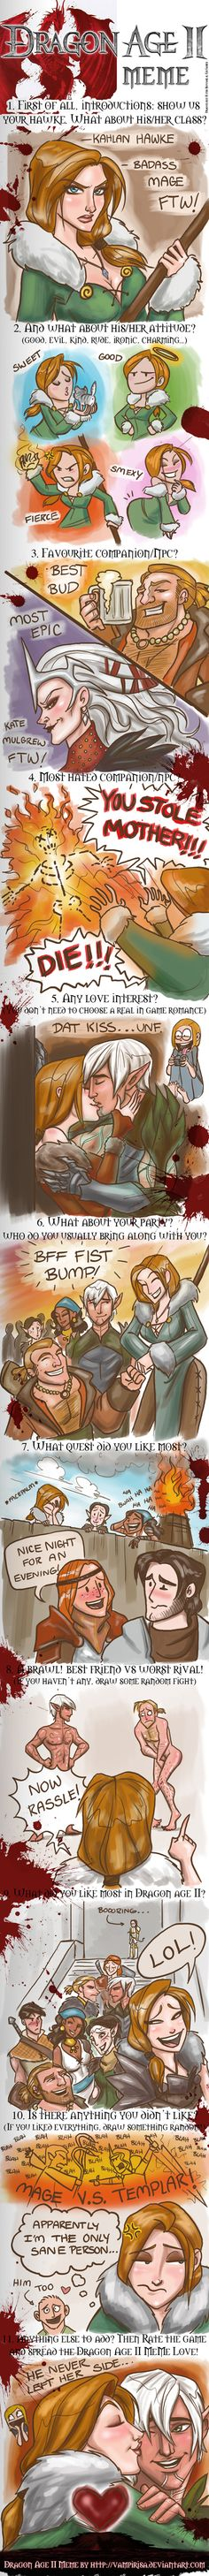 """Dragon Age II Meme by WendyDoodles on deviantART ****Favorite panel:  Fenris and Anders naked and Hawke says """"Now rassle"""" LMAO"""